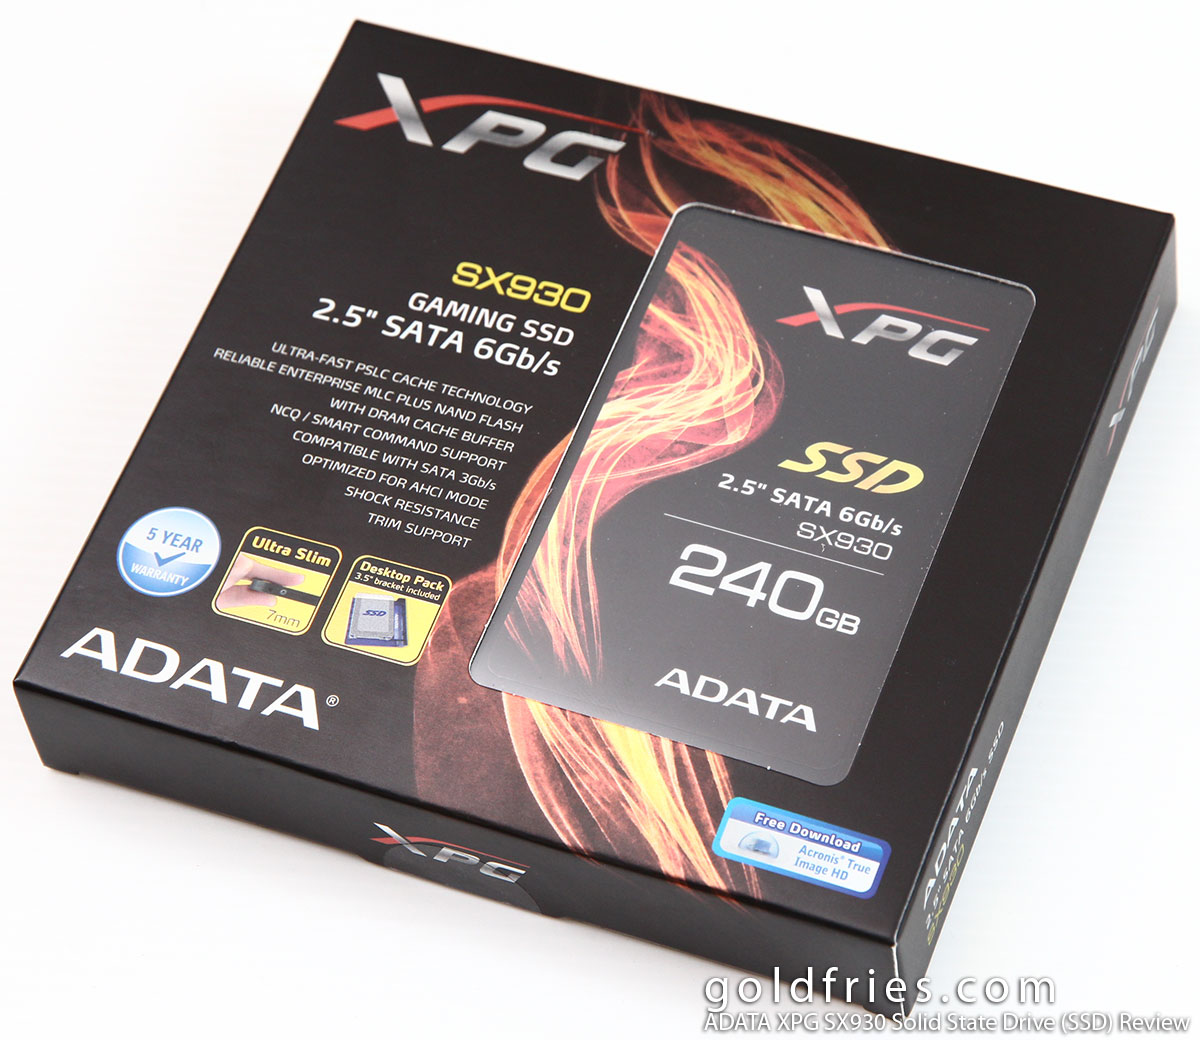 ADATA XPG SX930 Solid State Drive (SSD) Review